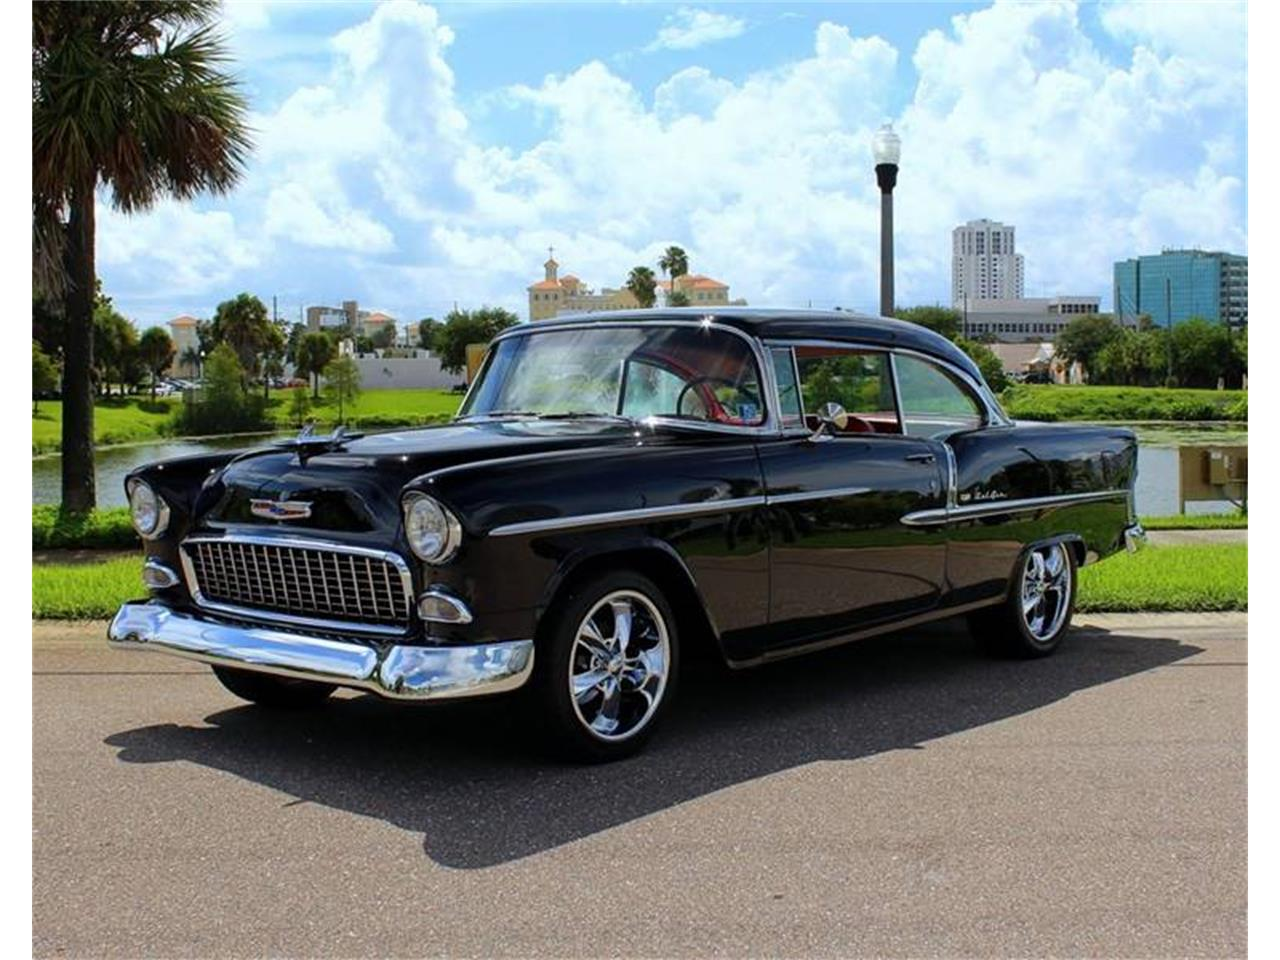 Large Picture of Classic '55 Chevrolet Bel Air located in Florida - $59,900.00 Offered by PJ's Auto World - QRFG